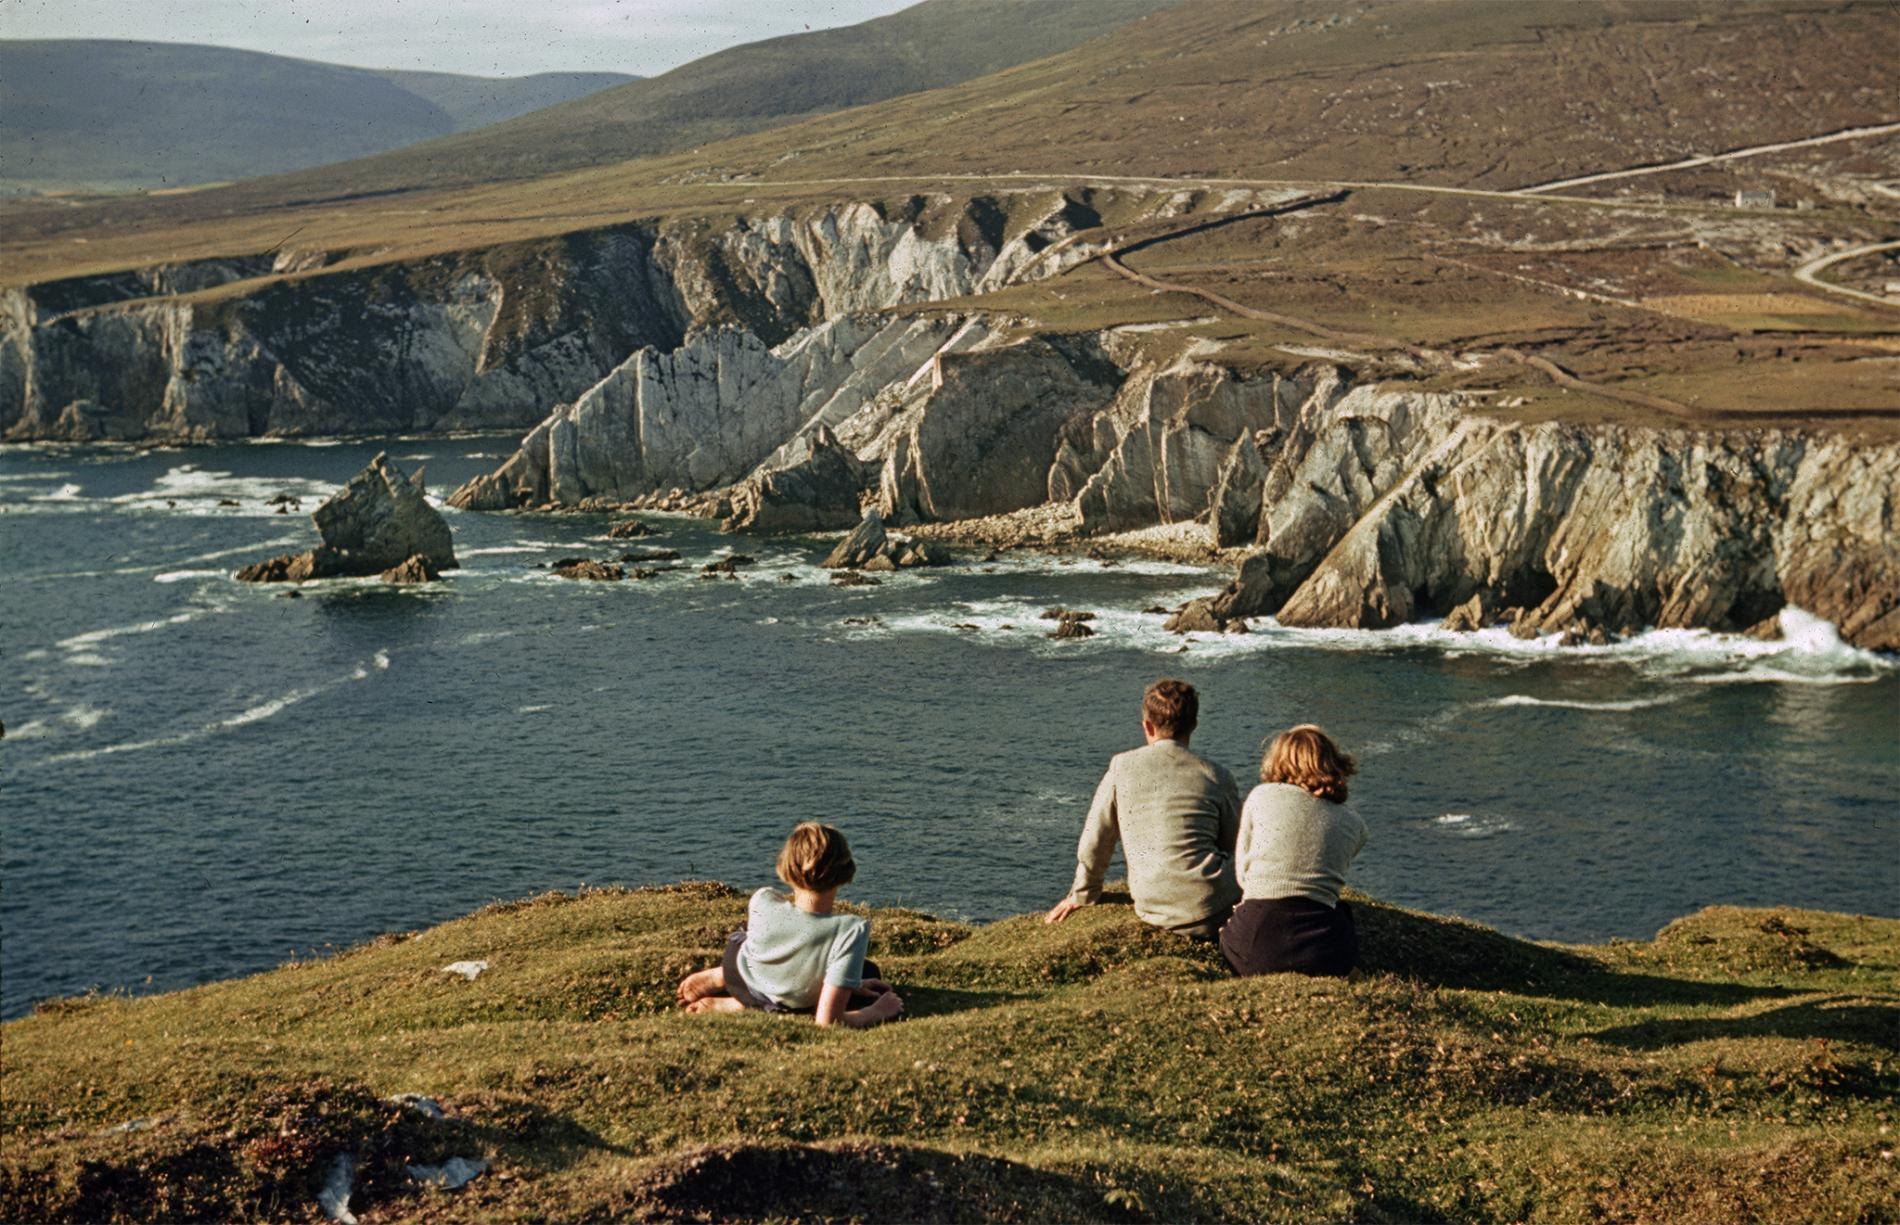 People relax by Ashleam Bay on Ireland's Achill Island in a photo from a 1940 National Geographic. In the distance, a low wall keeps cattle and sheep from falling off the cliffs.